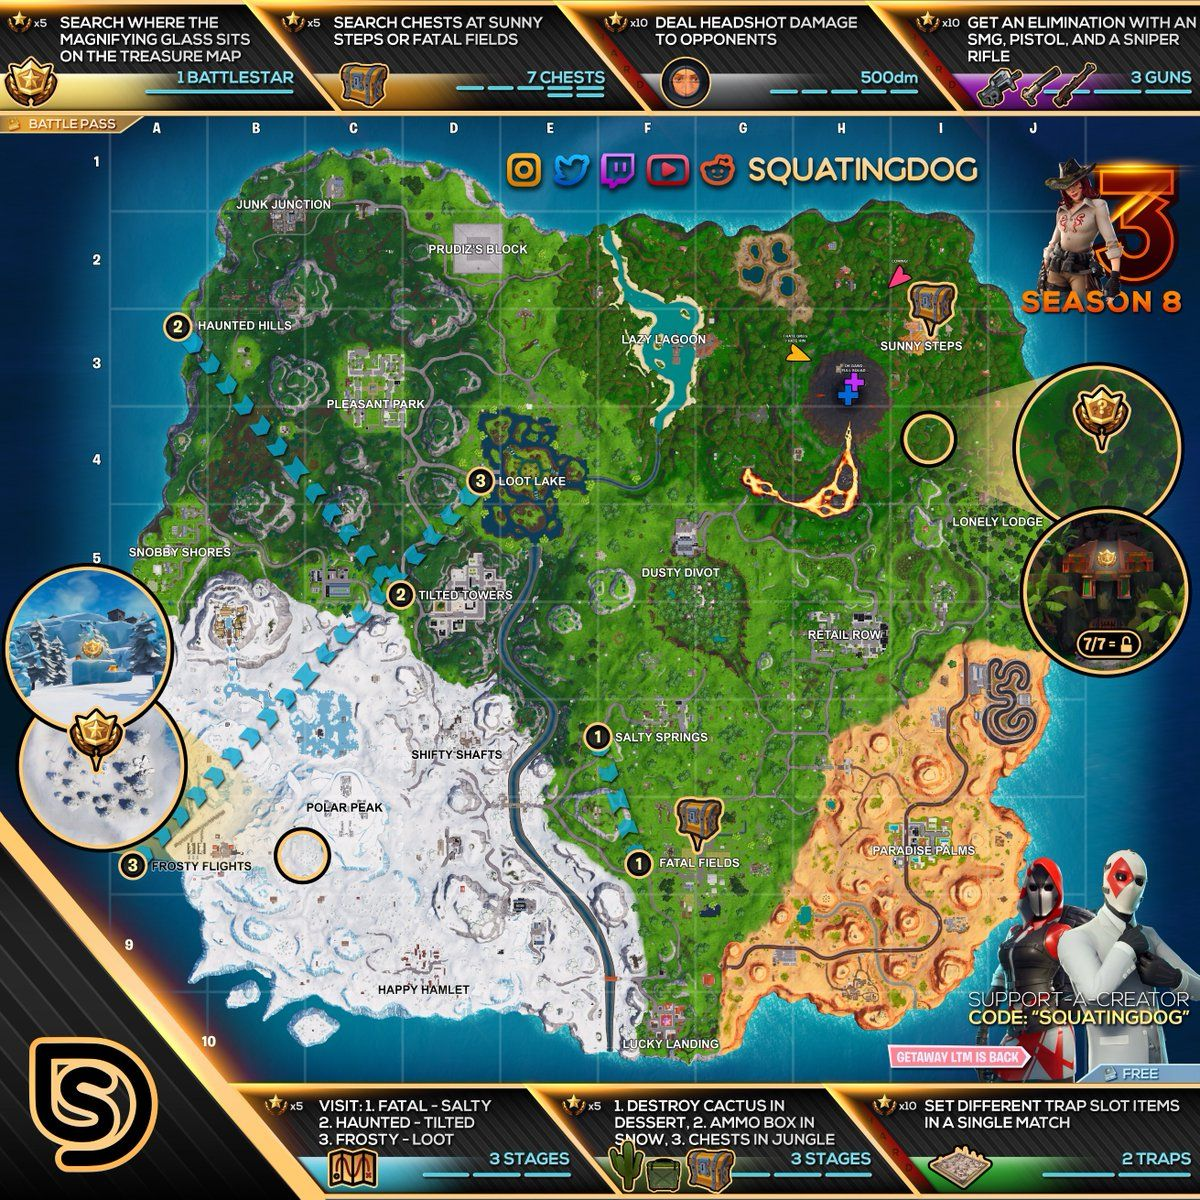 Complete Fortnite Cheat Sheet With All Season 8 Week 3 Challenge